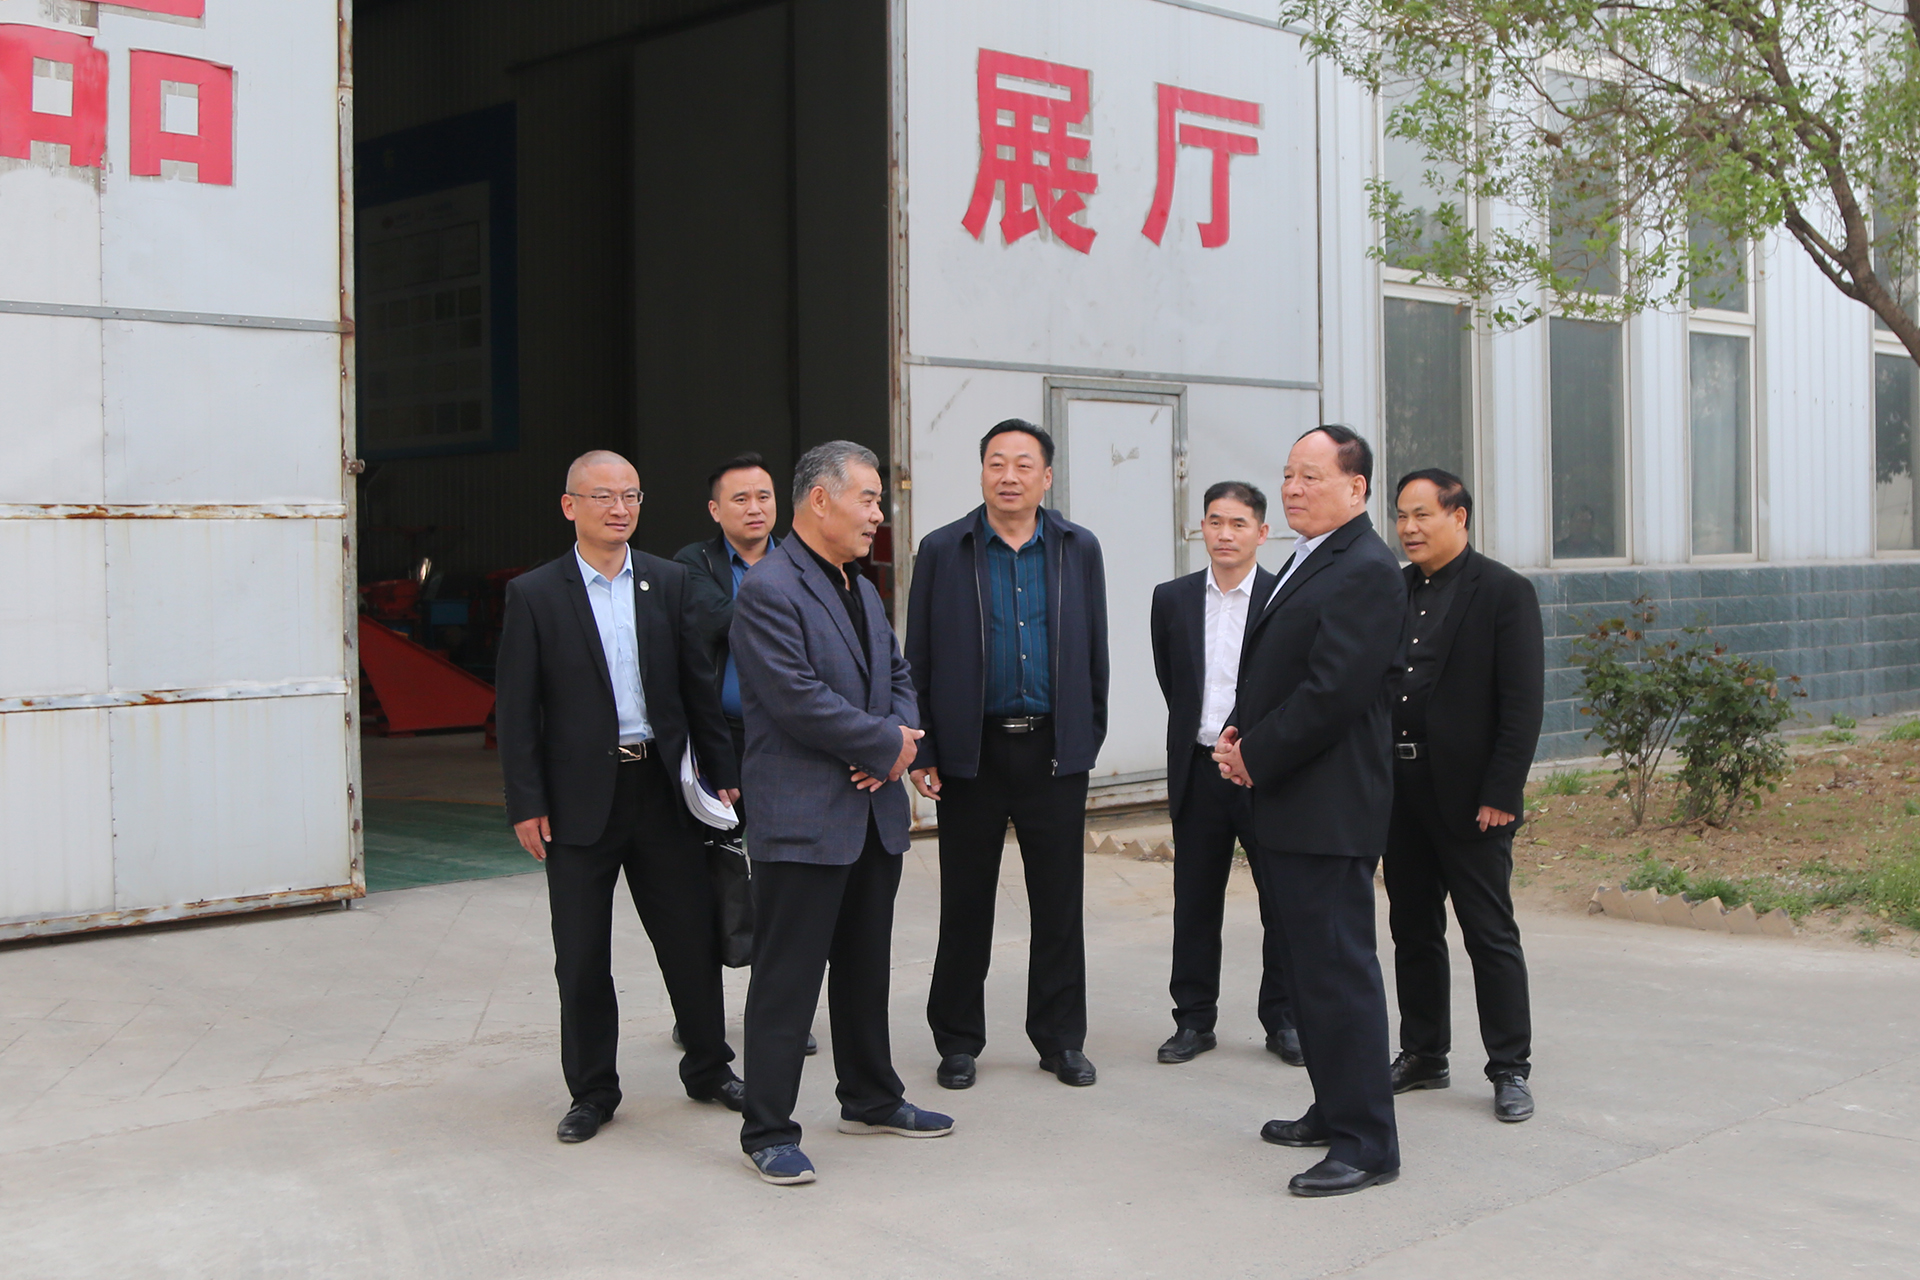 Warmly Welcome Jining Weishan Lake Chamber Of Commerce Chairman Jiao And His Party To Visit China Coal Group For Inspection And Cooperation